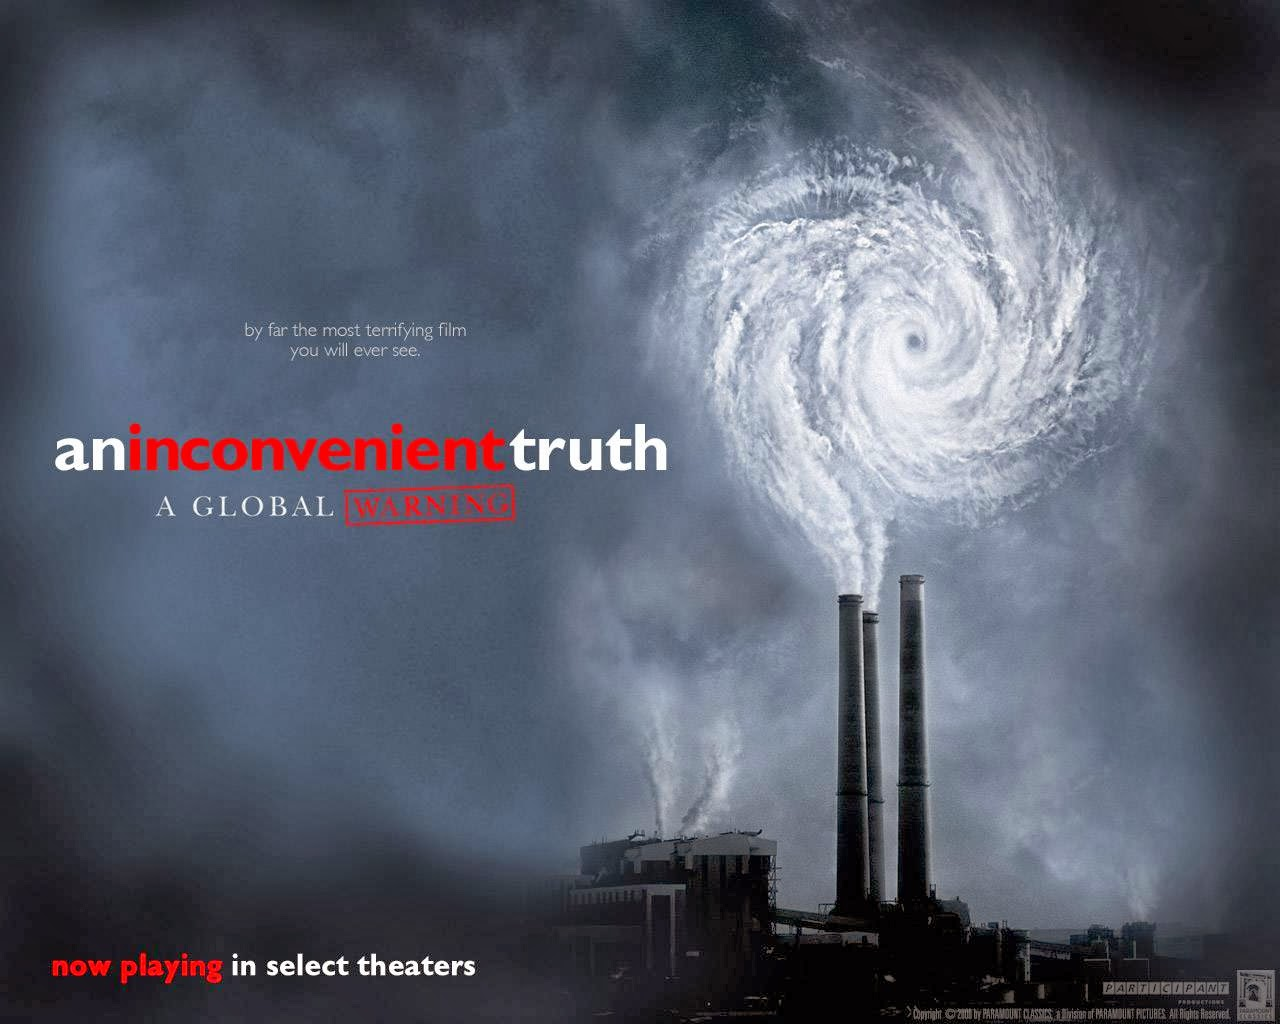 truth essays truth essay truth perception essay an essay on the  inconvenient truth essay an inconvenient truth online